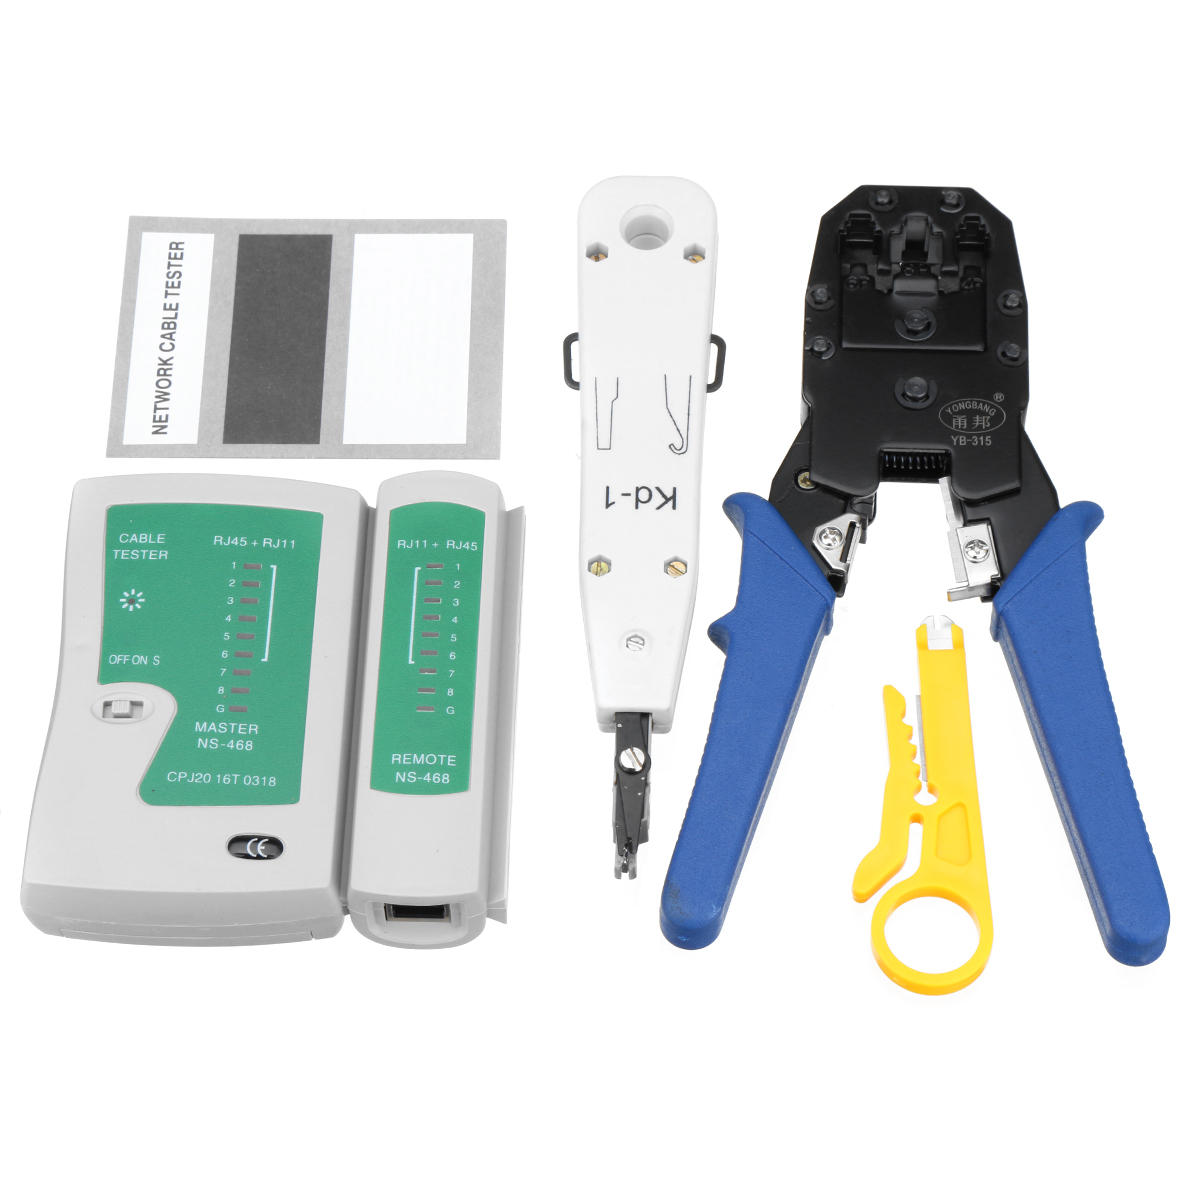 Network Ethernet Lan Rj11 Rj45 Cat5 Cat6 Cable Tester Wire Tracker Wiring Correctly Tool Kit